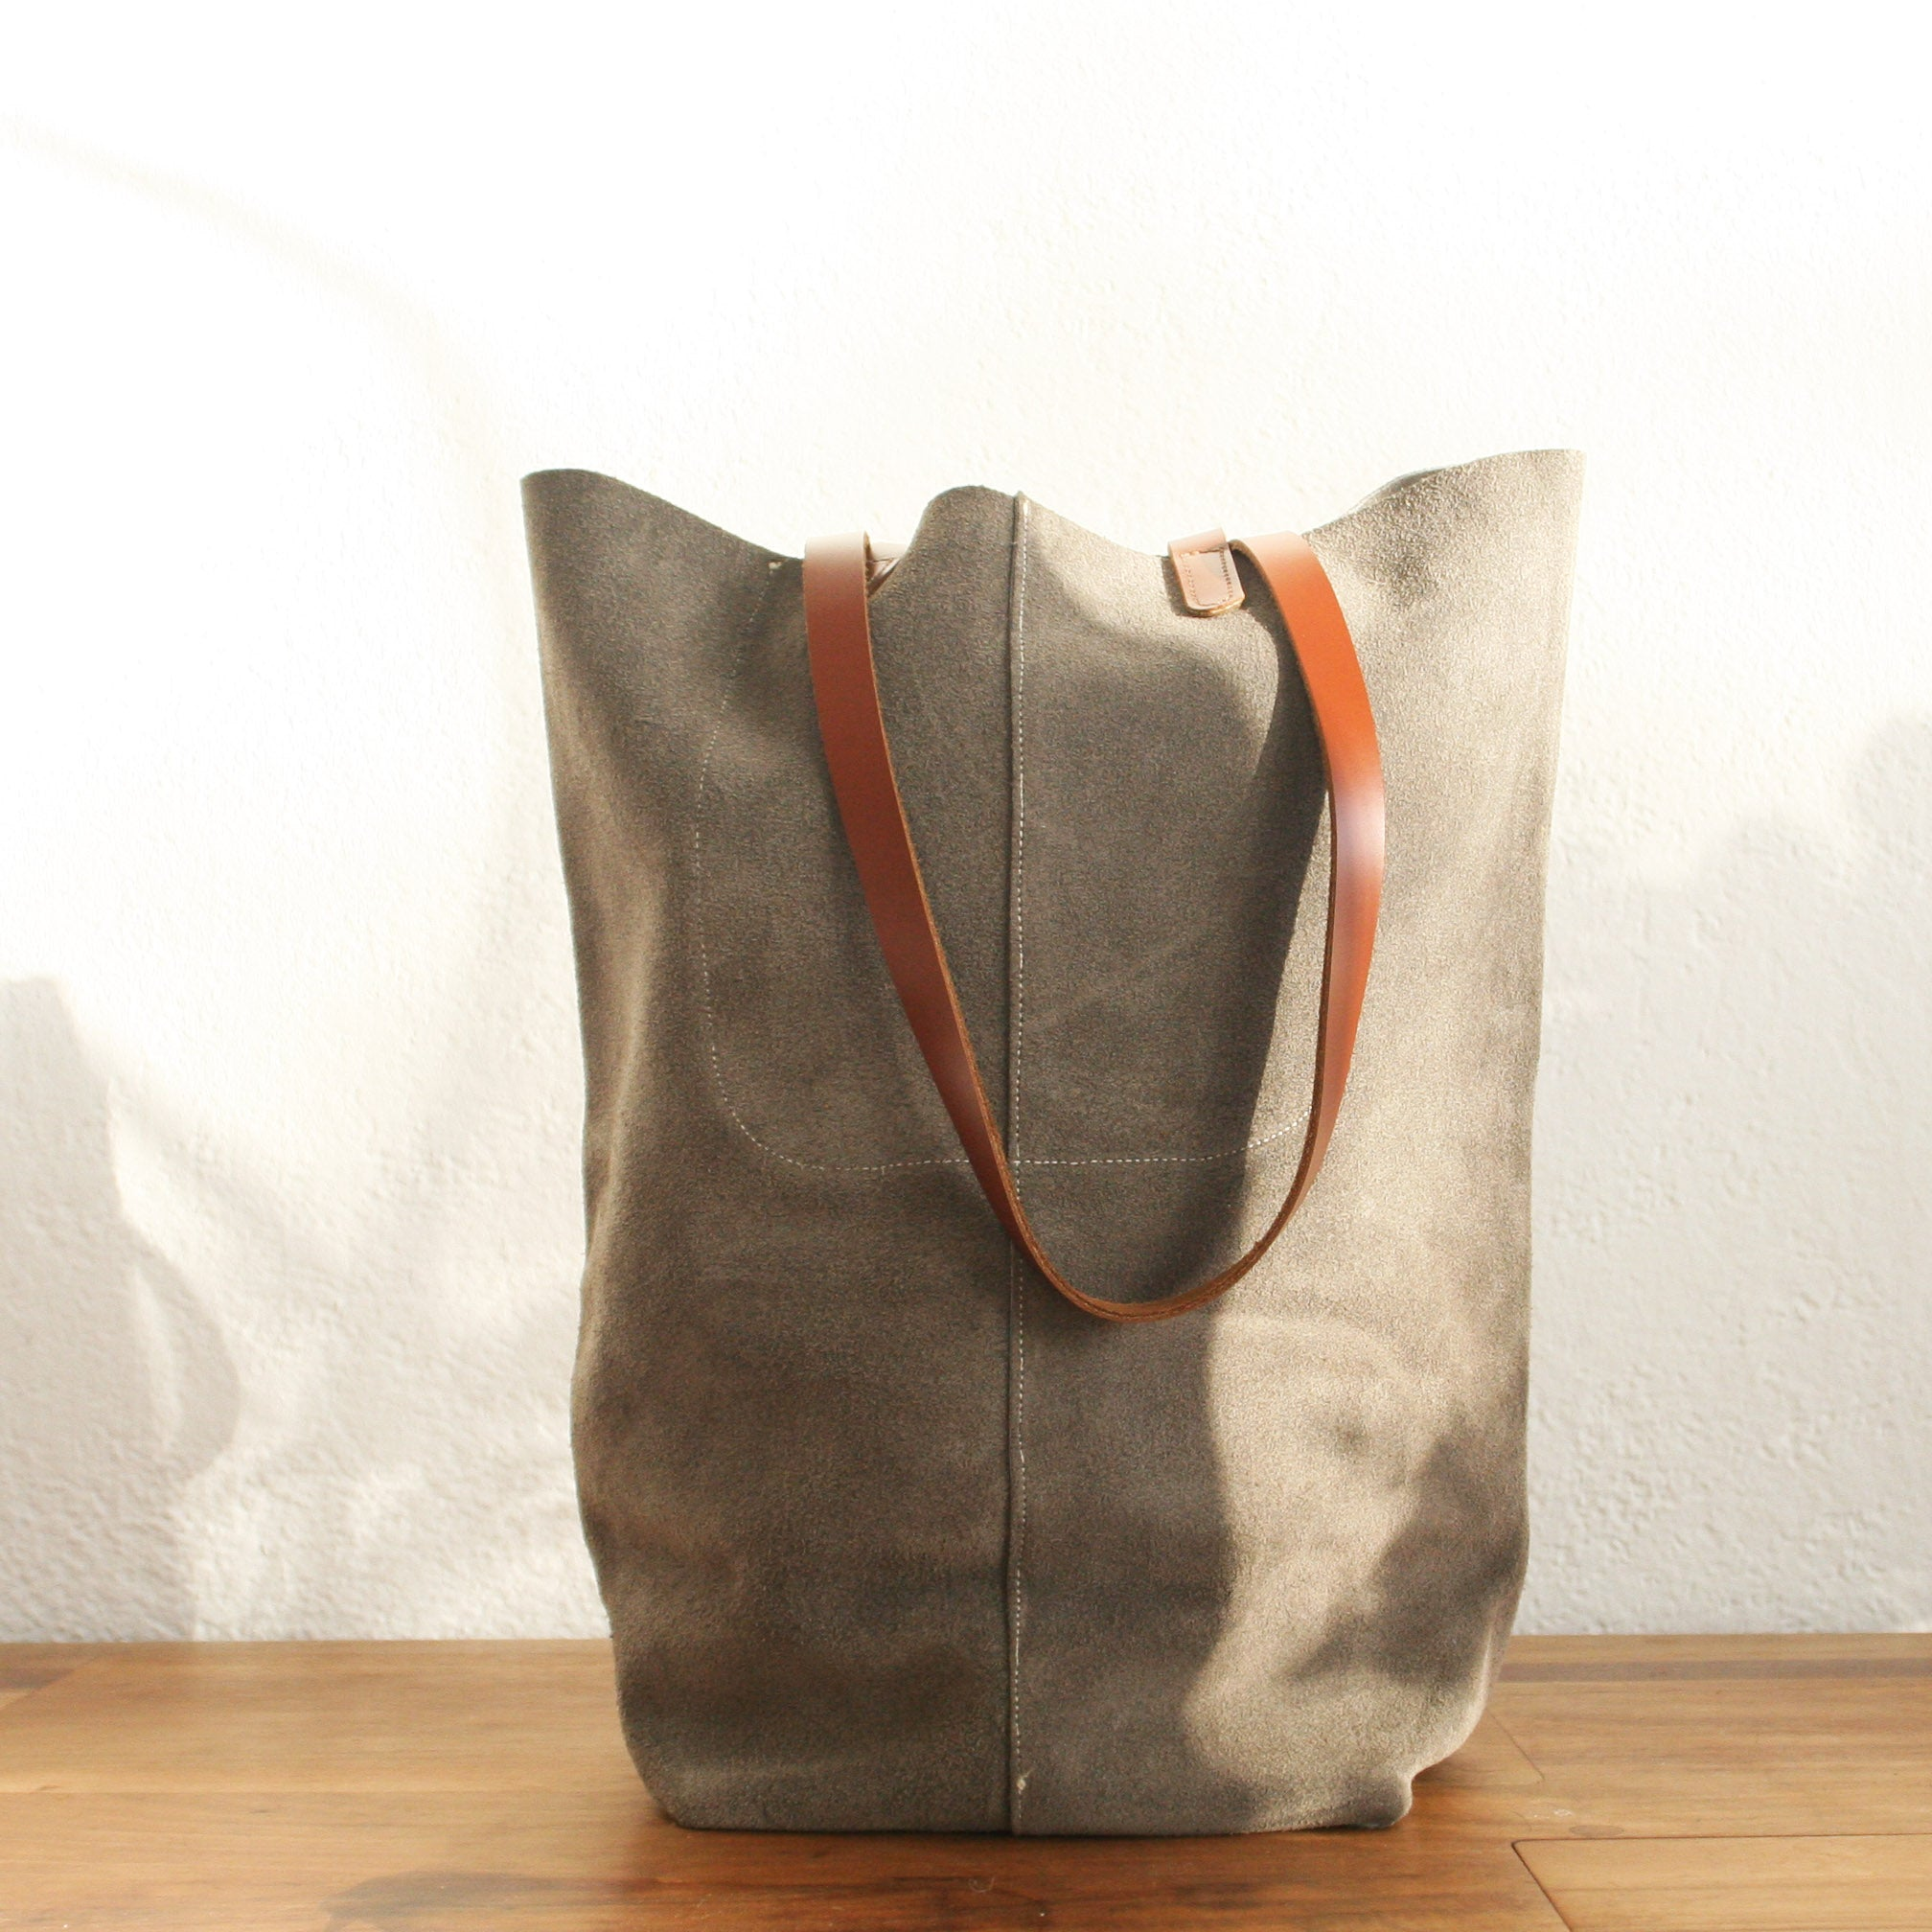 Paper Bag charcoal suede